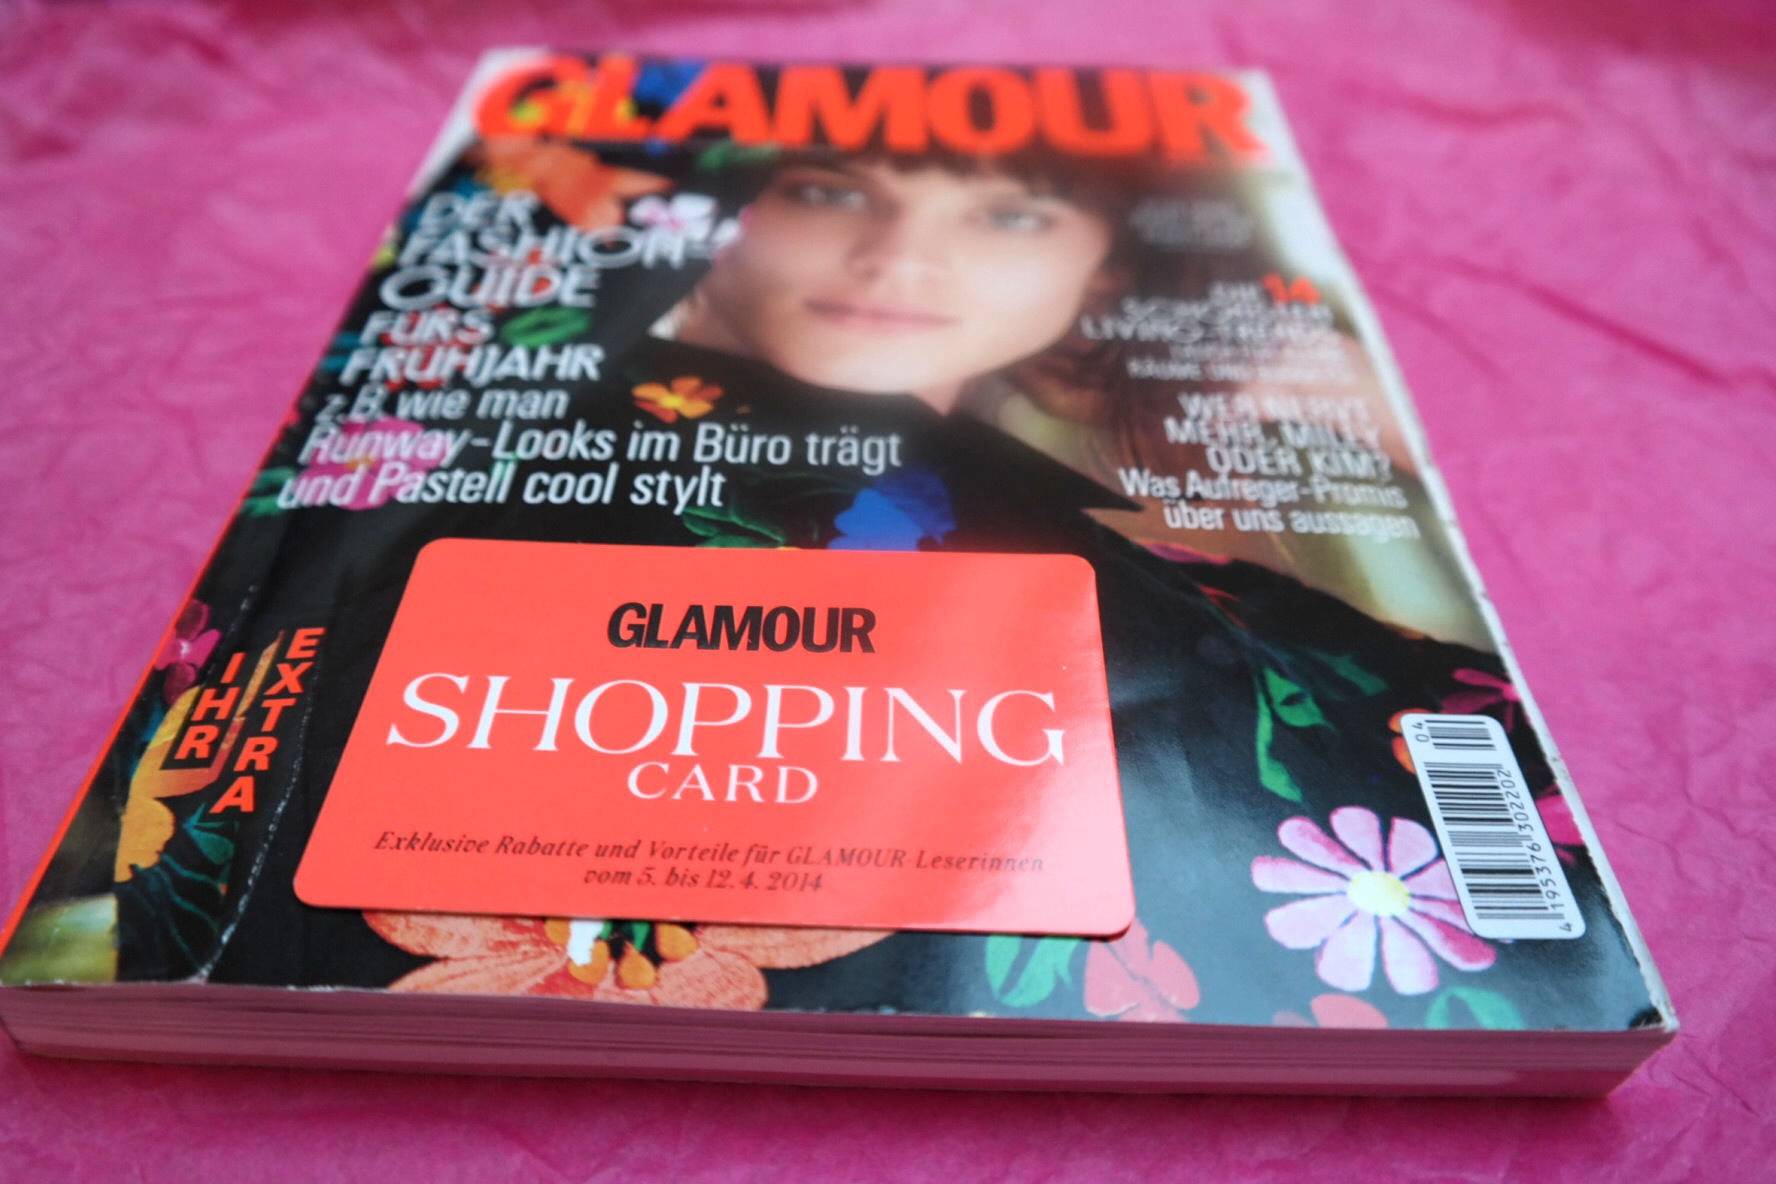 Shoppen, was die pinke Karte verträgt :) // Ab in die City mit der Glamour Shopping Card